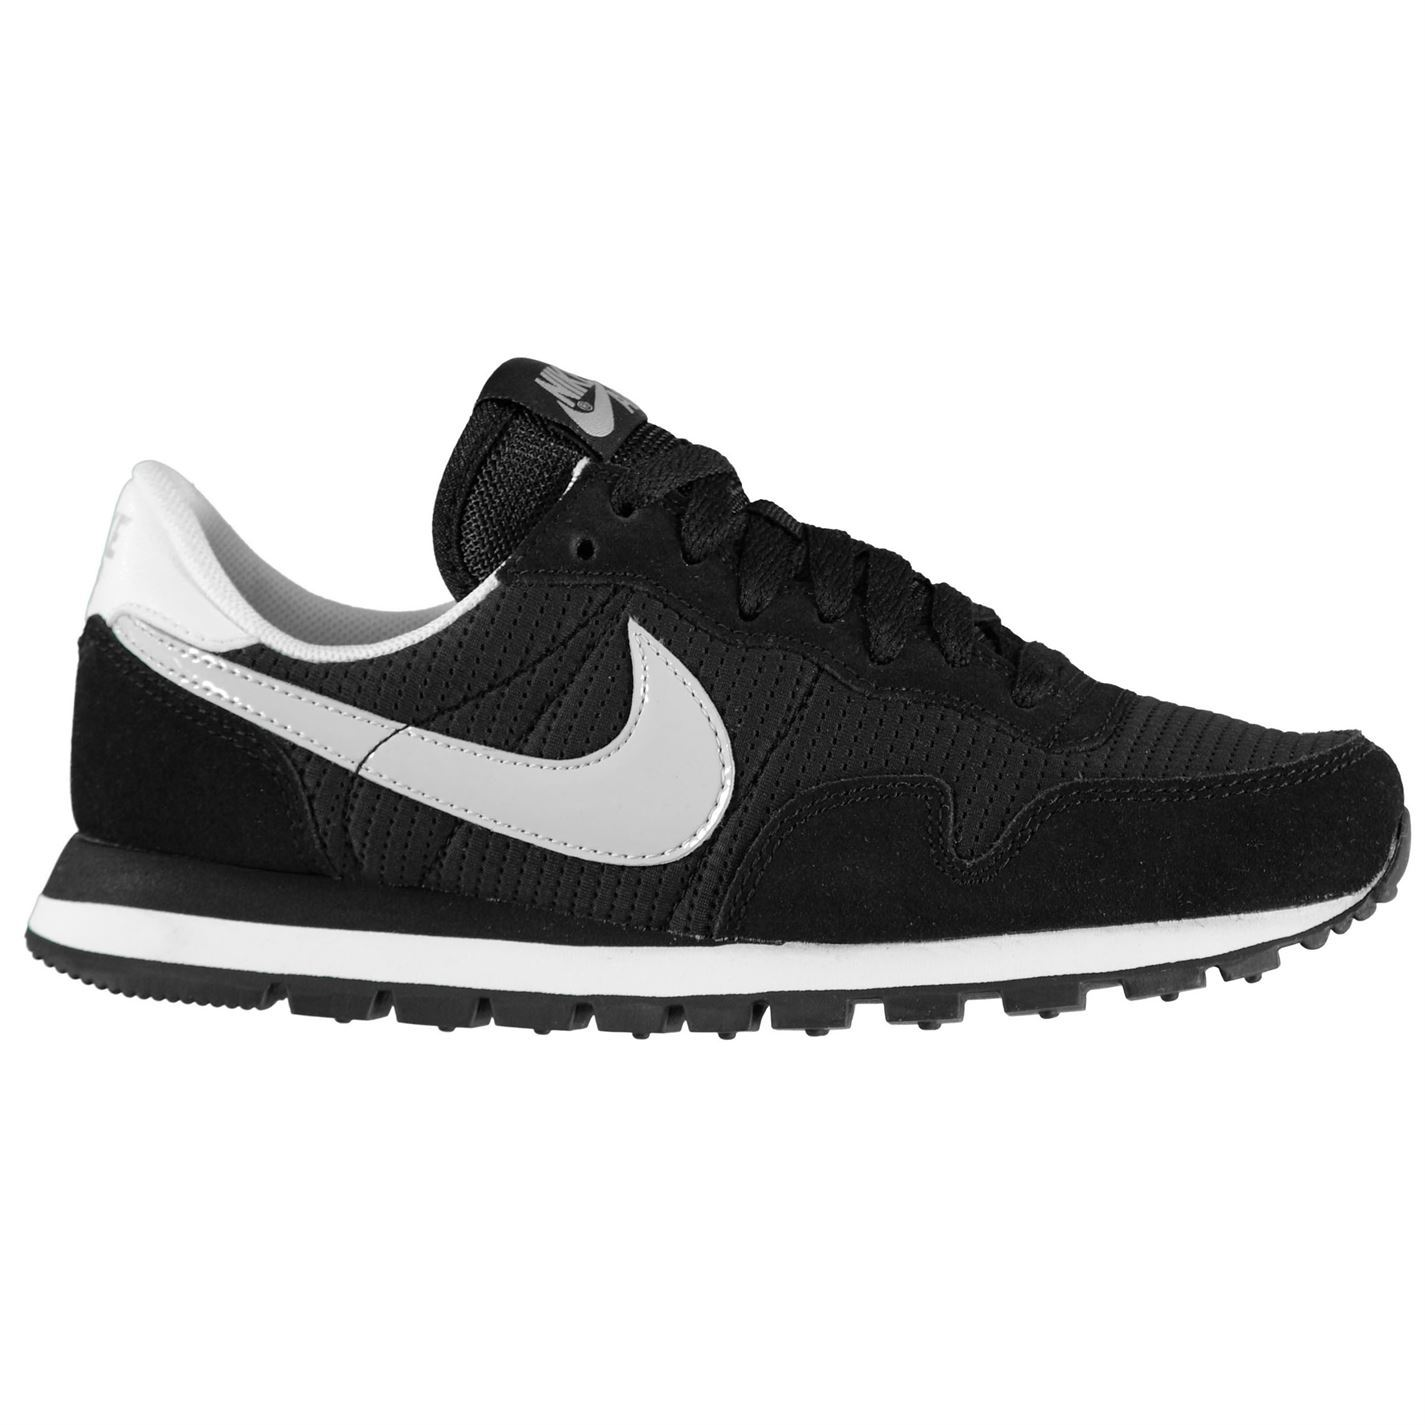 best authentic c1443 727a2 Details about Nike Air Pegasus Running Shoes Womens Jogging Trainers  Sneakers Fitness